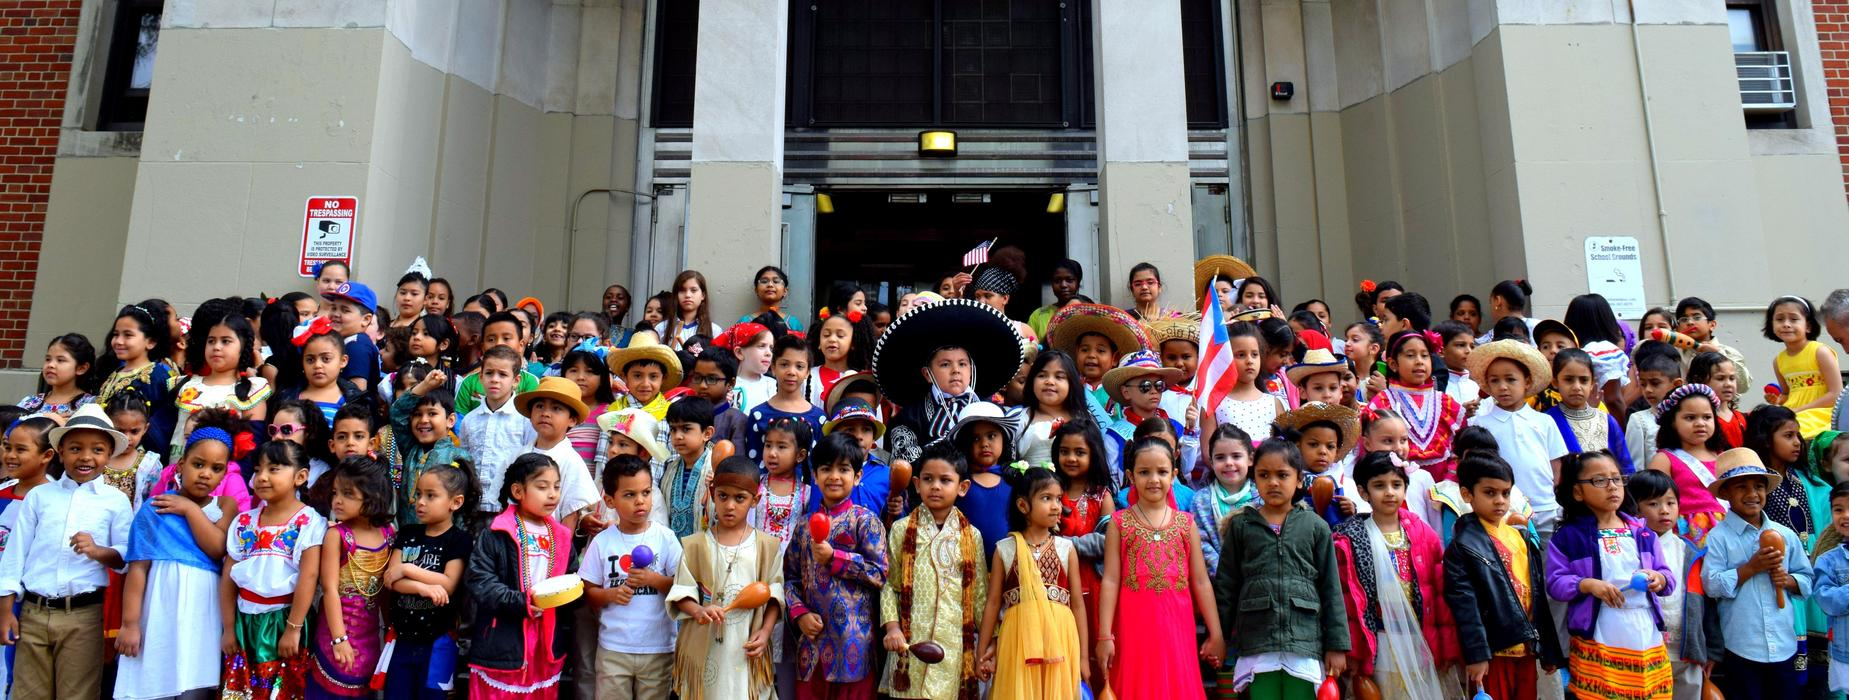 Students from PS8 stand in front of the school entrance dressed in multicolored and brilliant clothing representing their country of origin during the PS8 2019 Multicultural Week Parade.